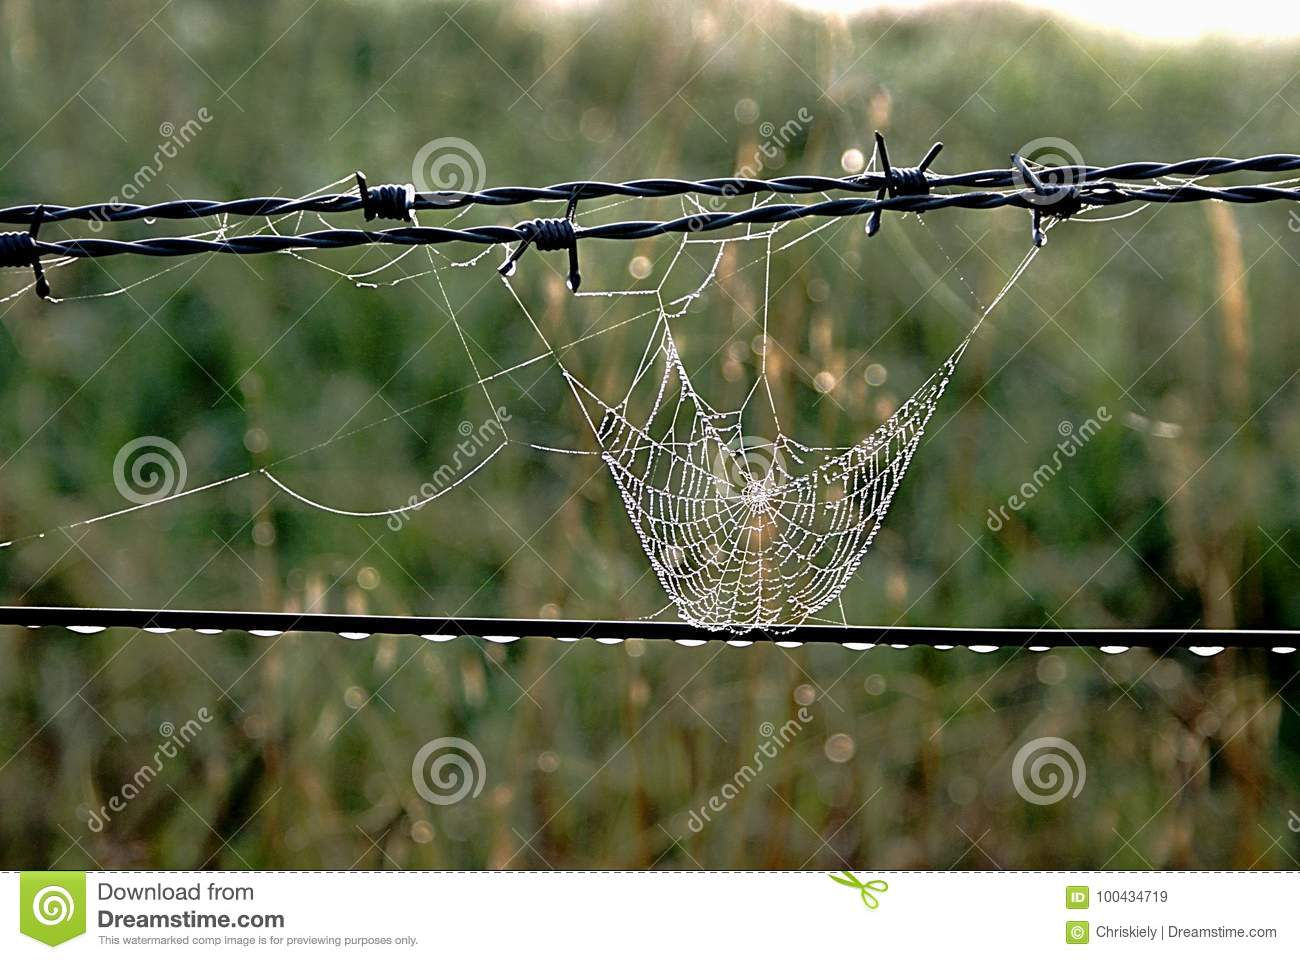 Spider Web on Fence